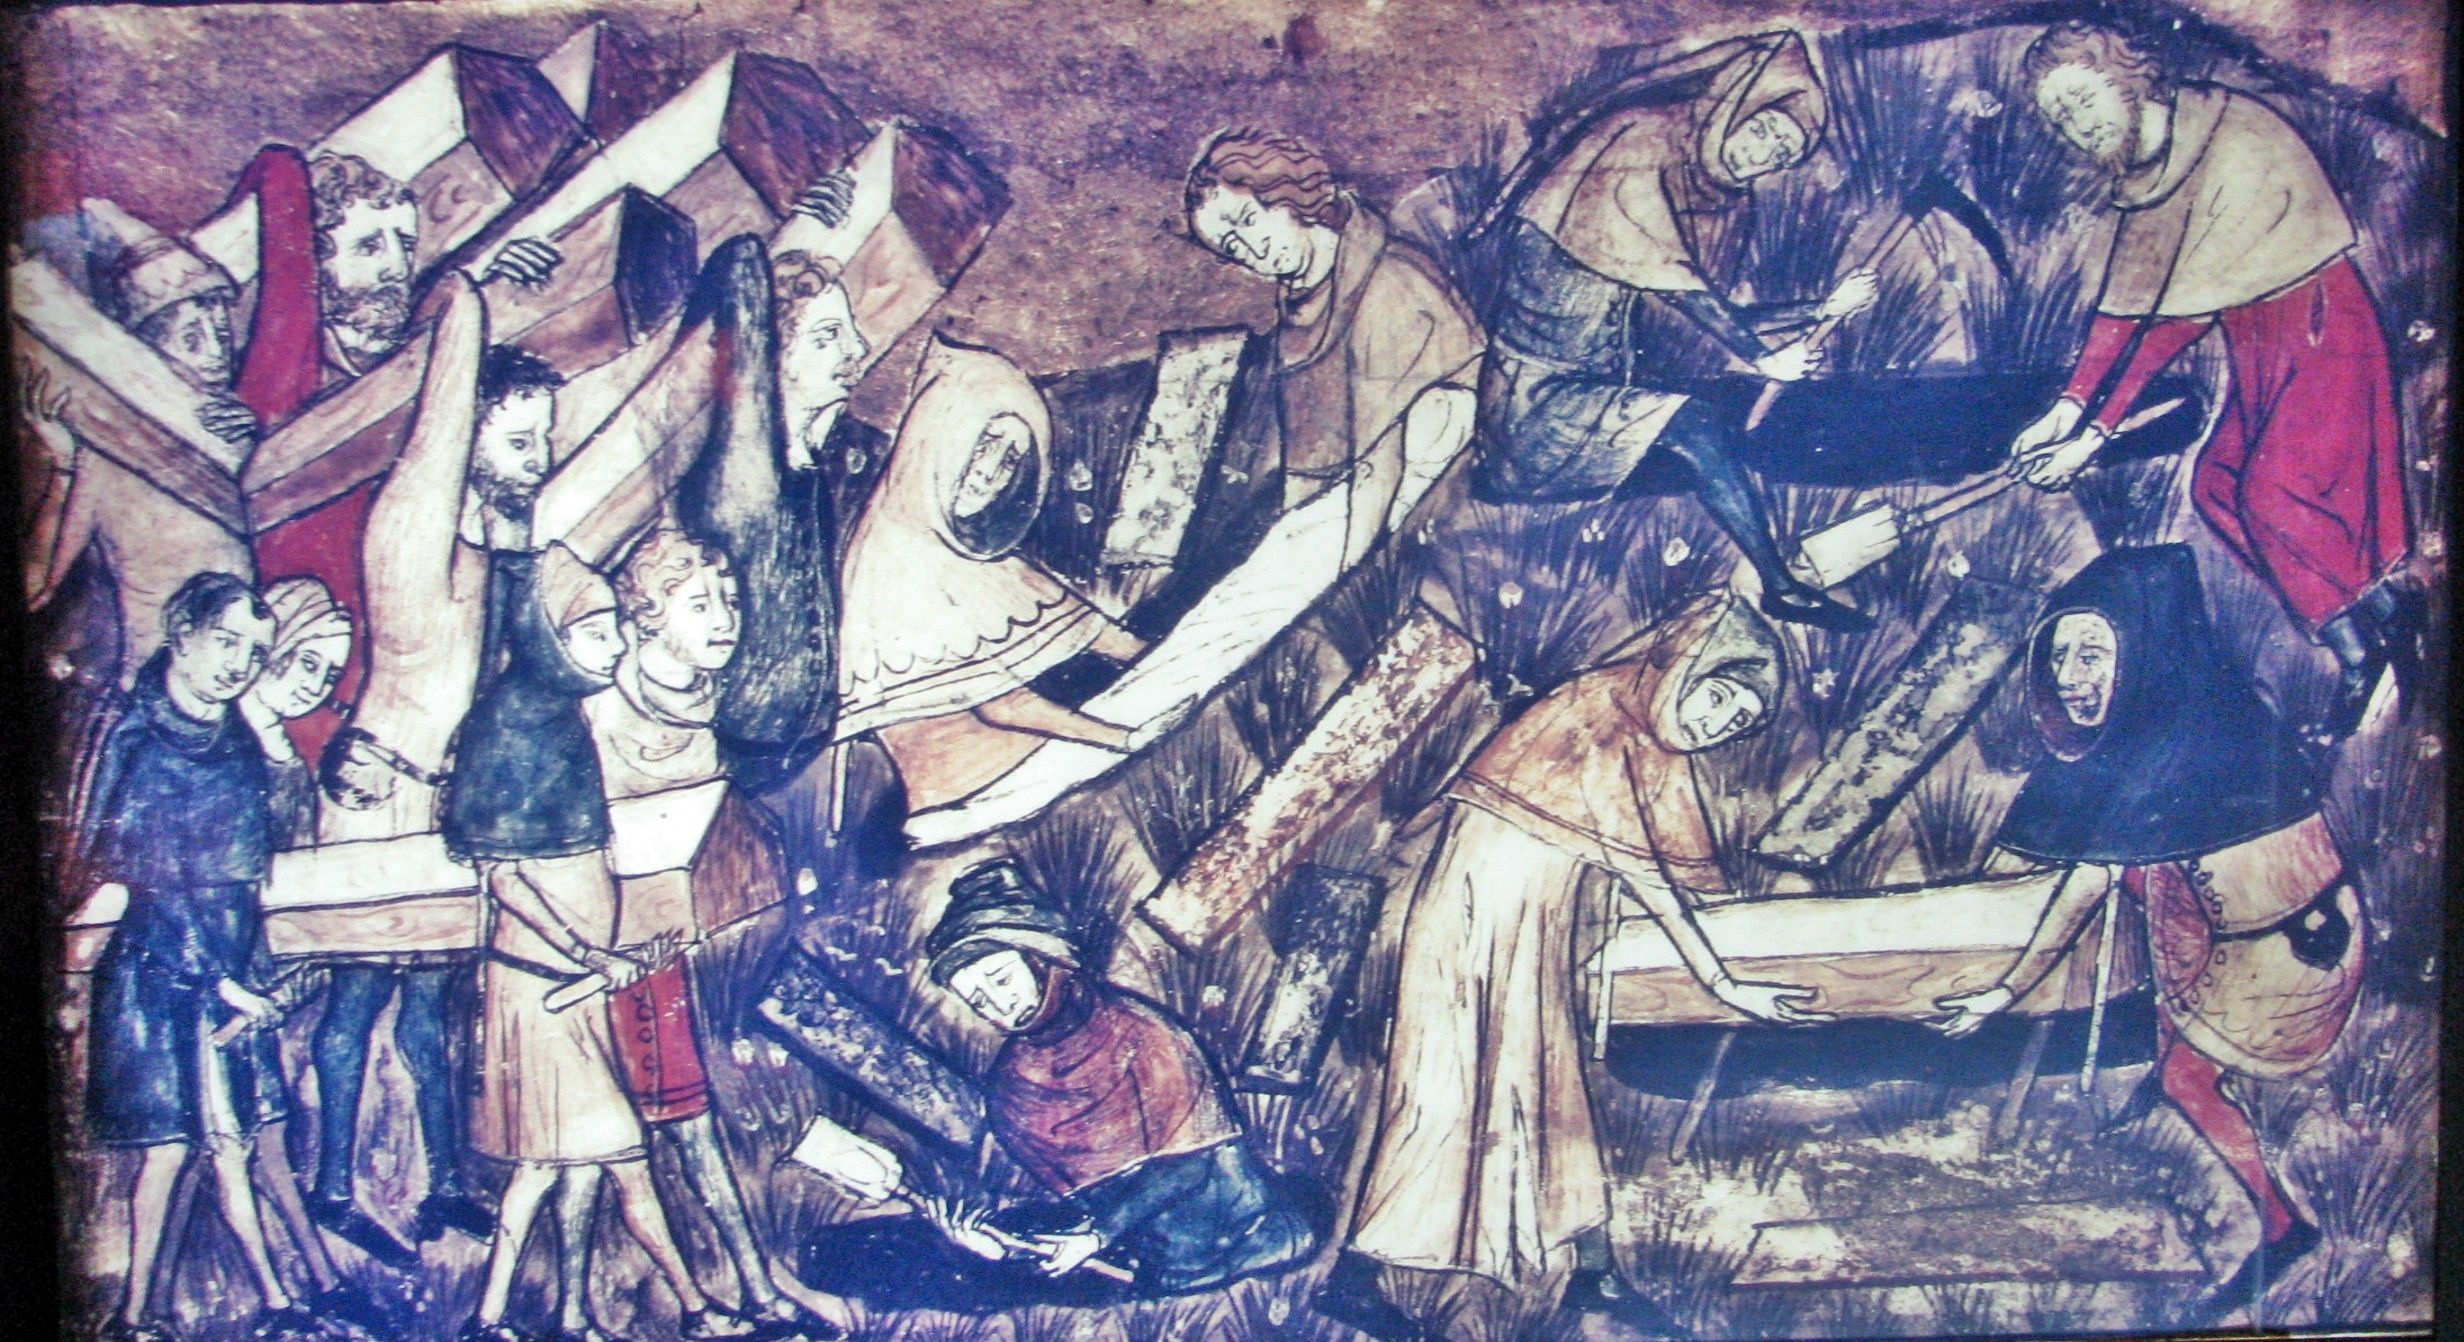 Number Of Years The Black Death Existed In Asia Before It  Bubonic Plague Essay Ebola And The Black Death May Be Terrifyingly Similar  Science Says Research Paper Essay also Writing High School Essays Writing A High School Essay